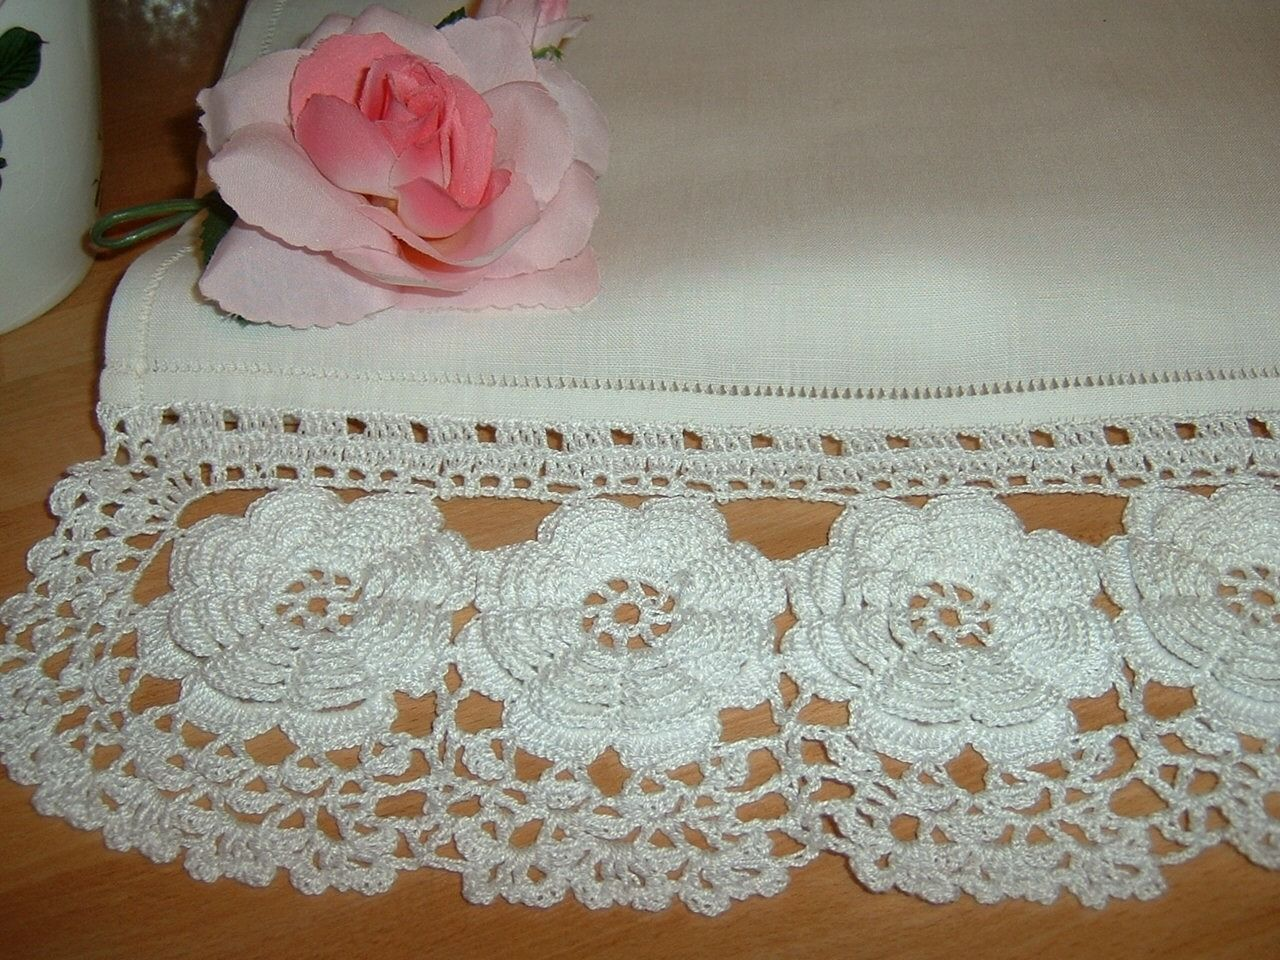 Pizzo per tendina all 39 uncinetto con rose d 39 irlanda for Pizzi all uncinetto per credenze